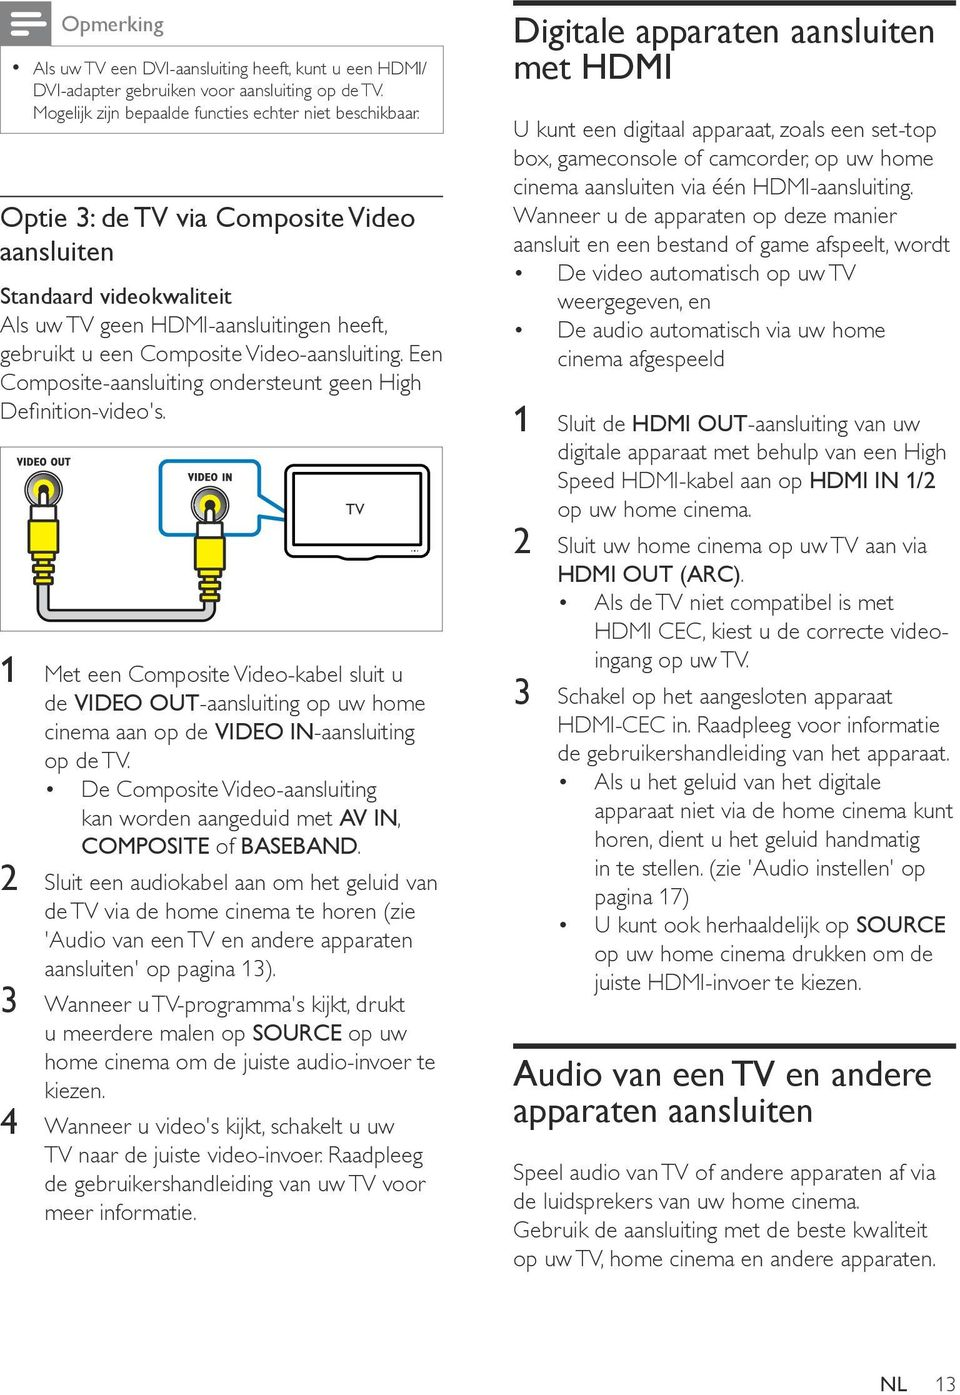 Een Composite-aansluiting ondersteunt geen High Definition-video's. 1 Met een Composite Video-kabel sluit u de VIDEO OUT-aansluiting op uw home cinema aan op de VIDEO IN-aansluiting op de TV.